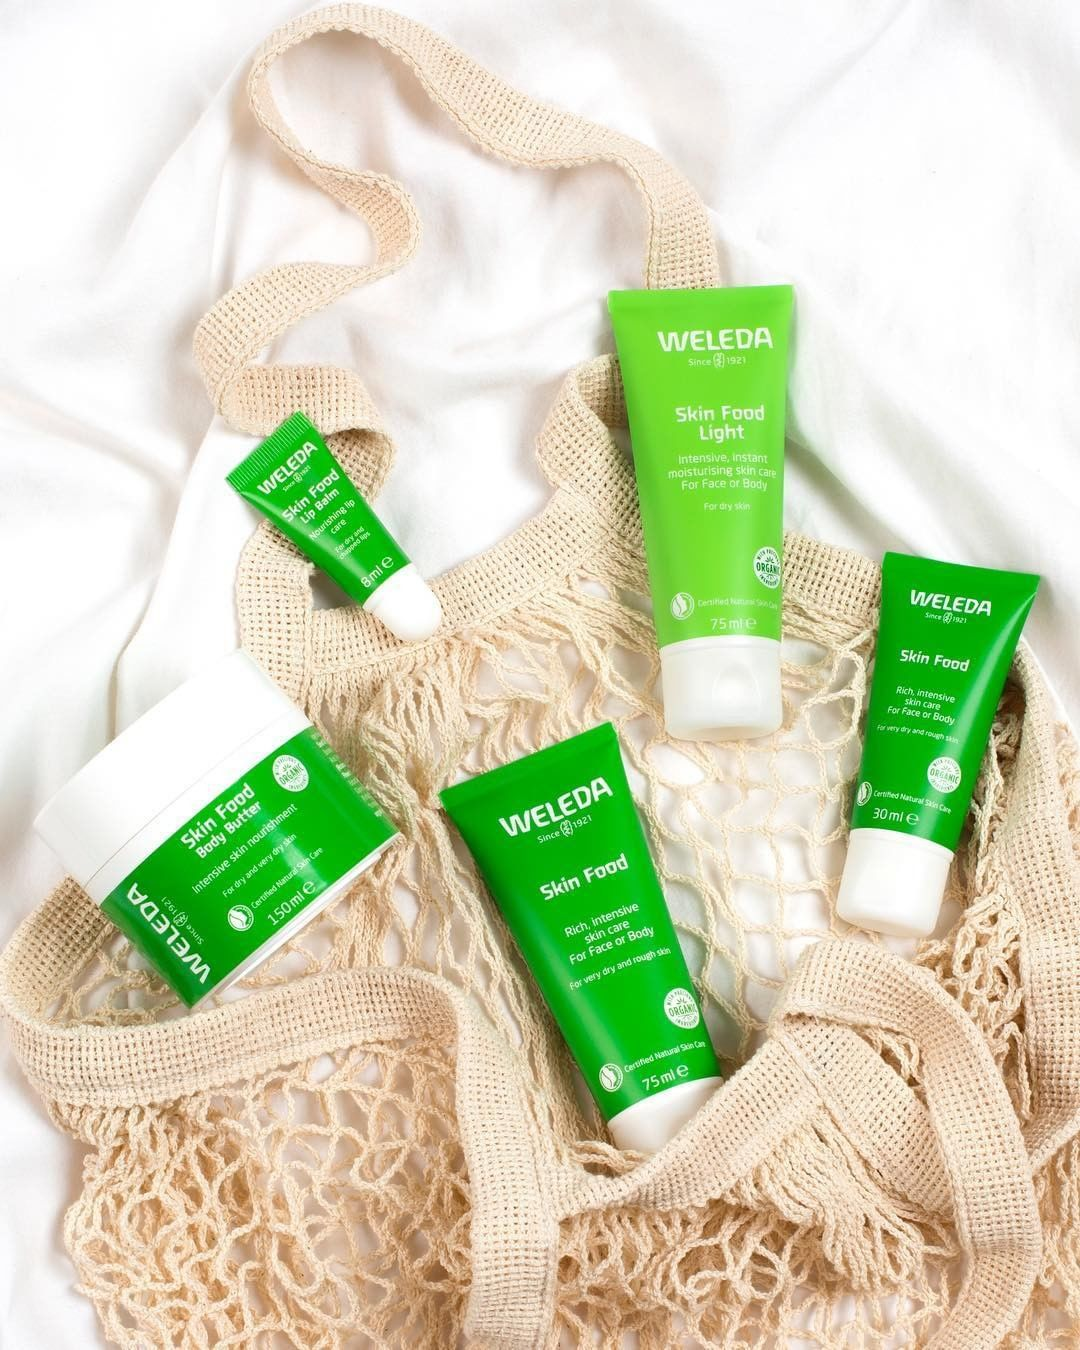 We Are So Excited To Show All These Goodies By Weledaskinfood Inspired By The Bestselling Skin Food The Iconic Cr Weleda Skin Food Skin Food Organic Beauty